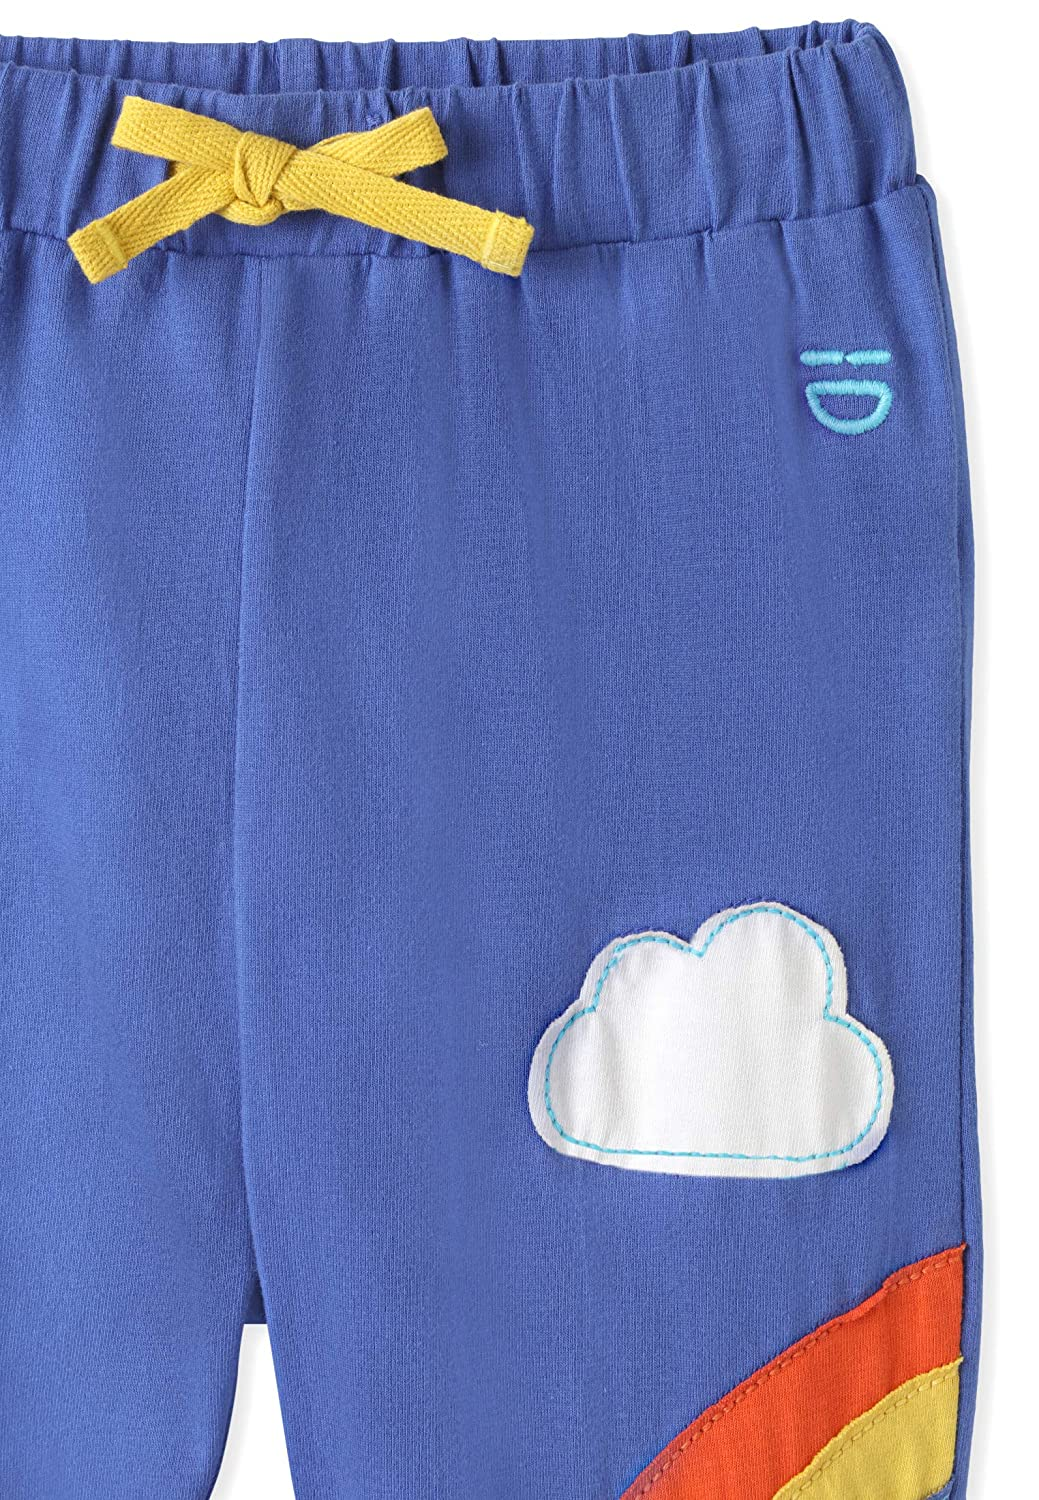 2-4Y kIDio Organic Cotton Toddler Blue Knee Patch Trousers Boys Girls Rainbow Applique